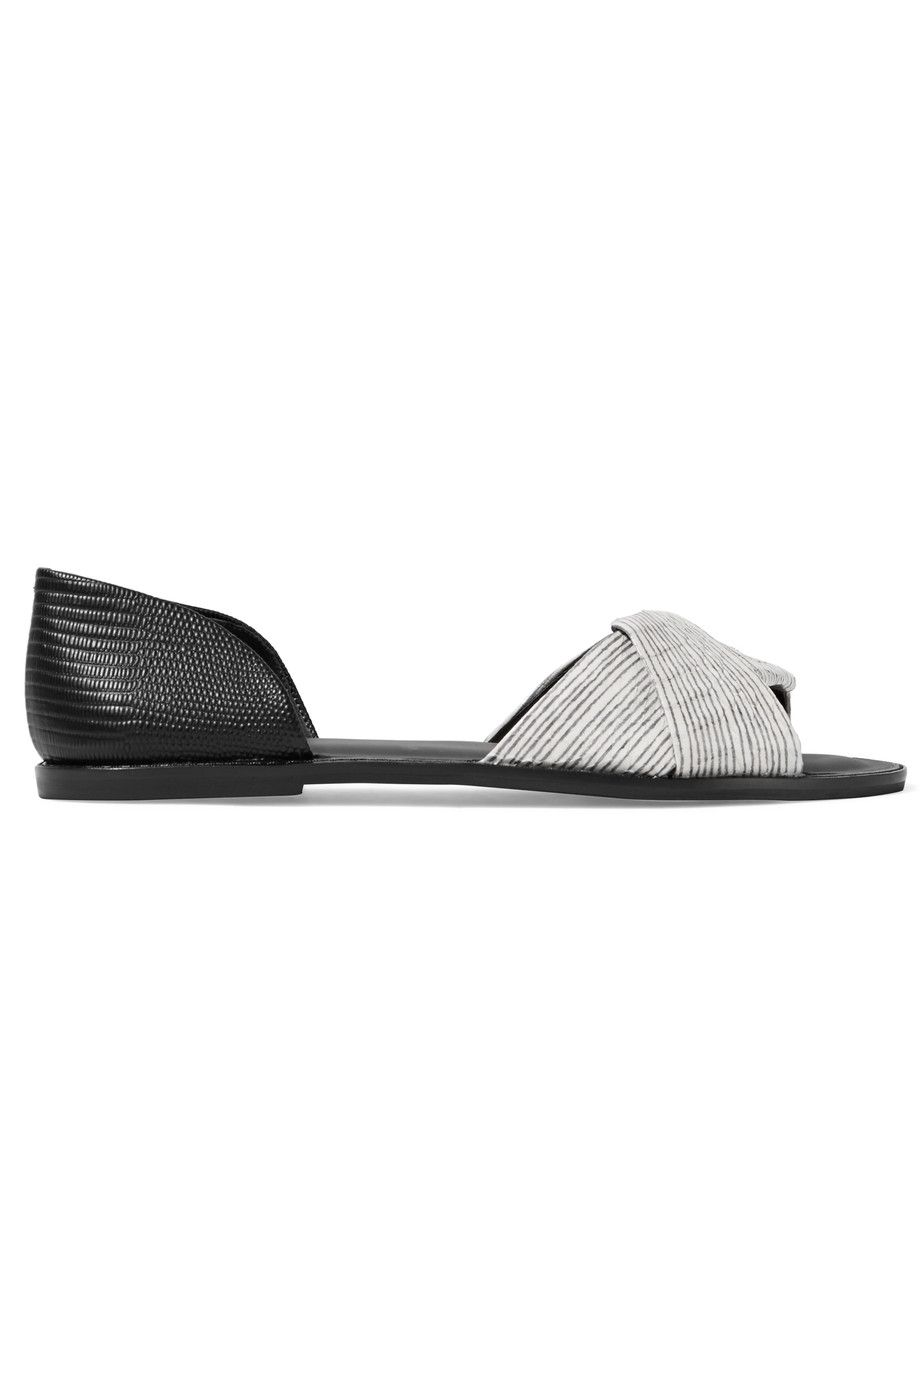 VINCE Idara printed elaphe and lizard-effect leather sandals. #vince #shoes #sandals